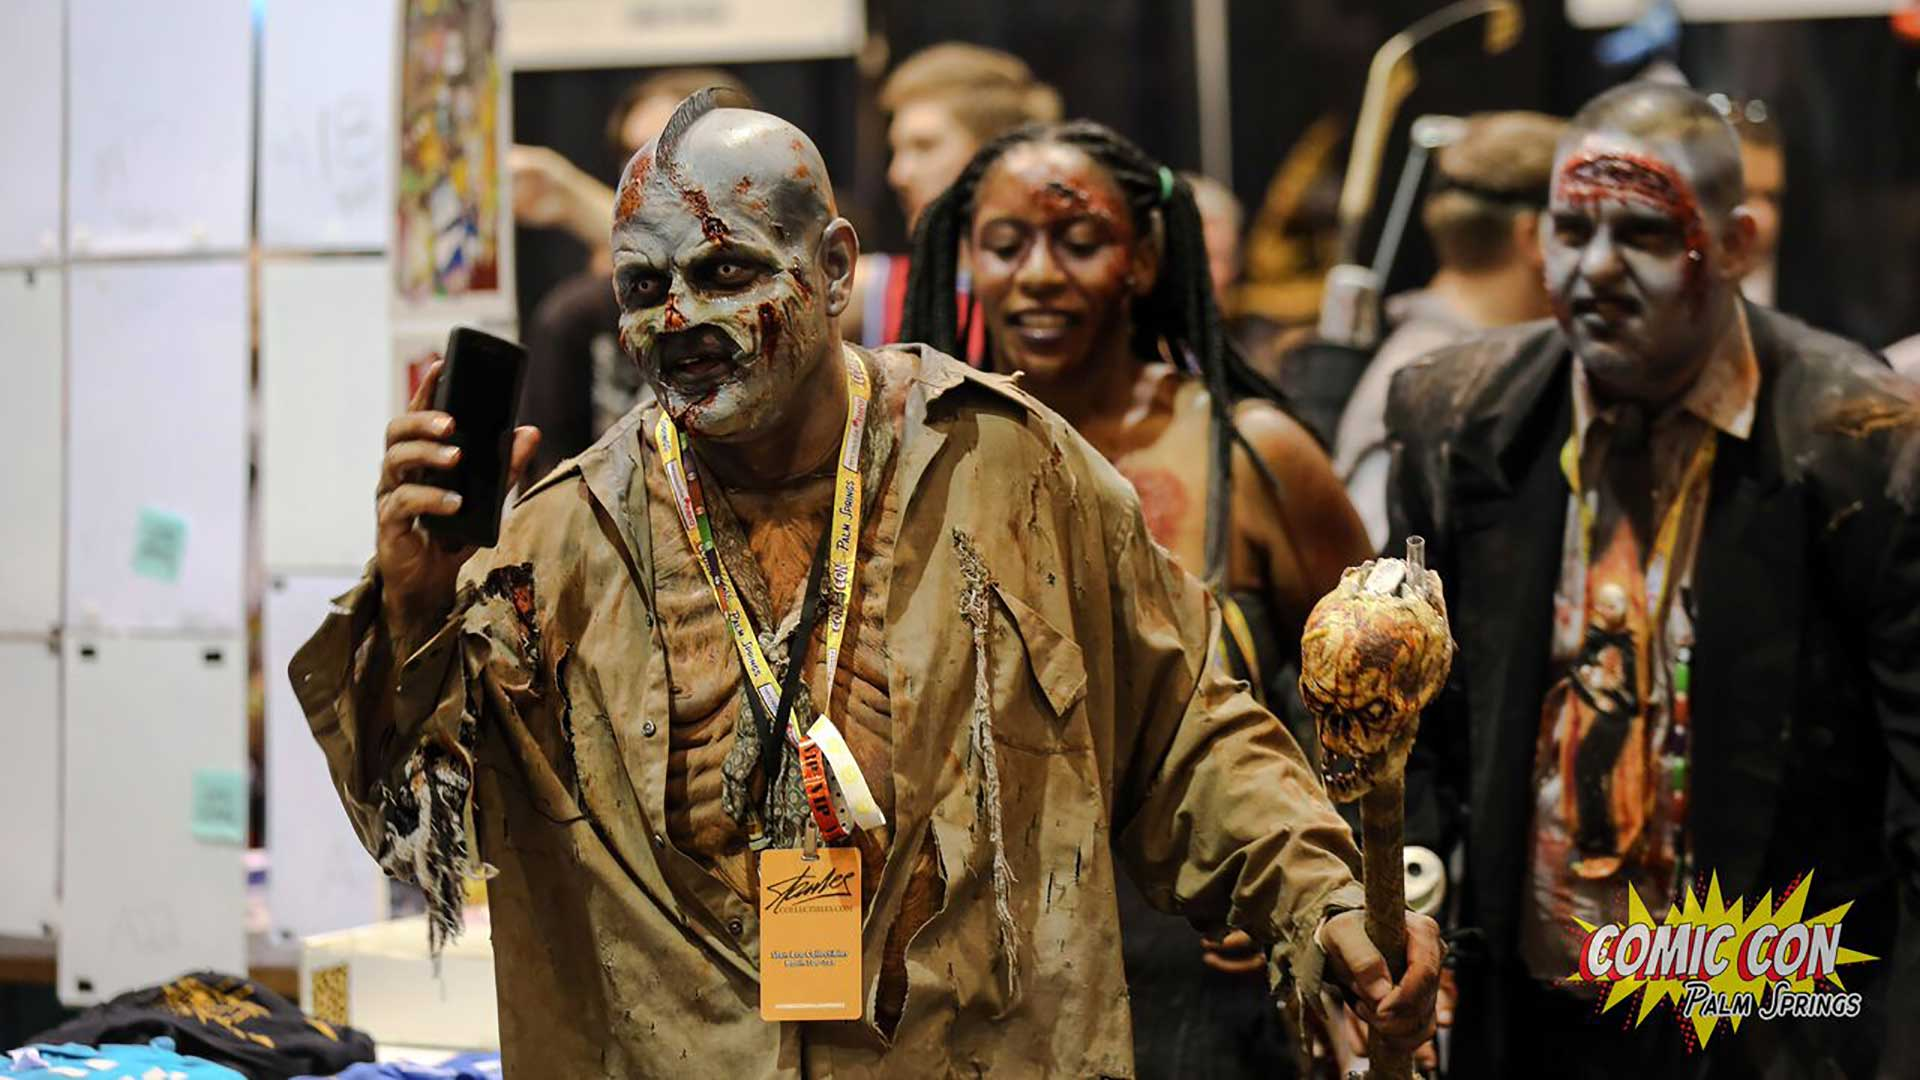 comic con palm springs zombies